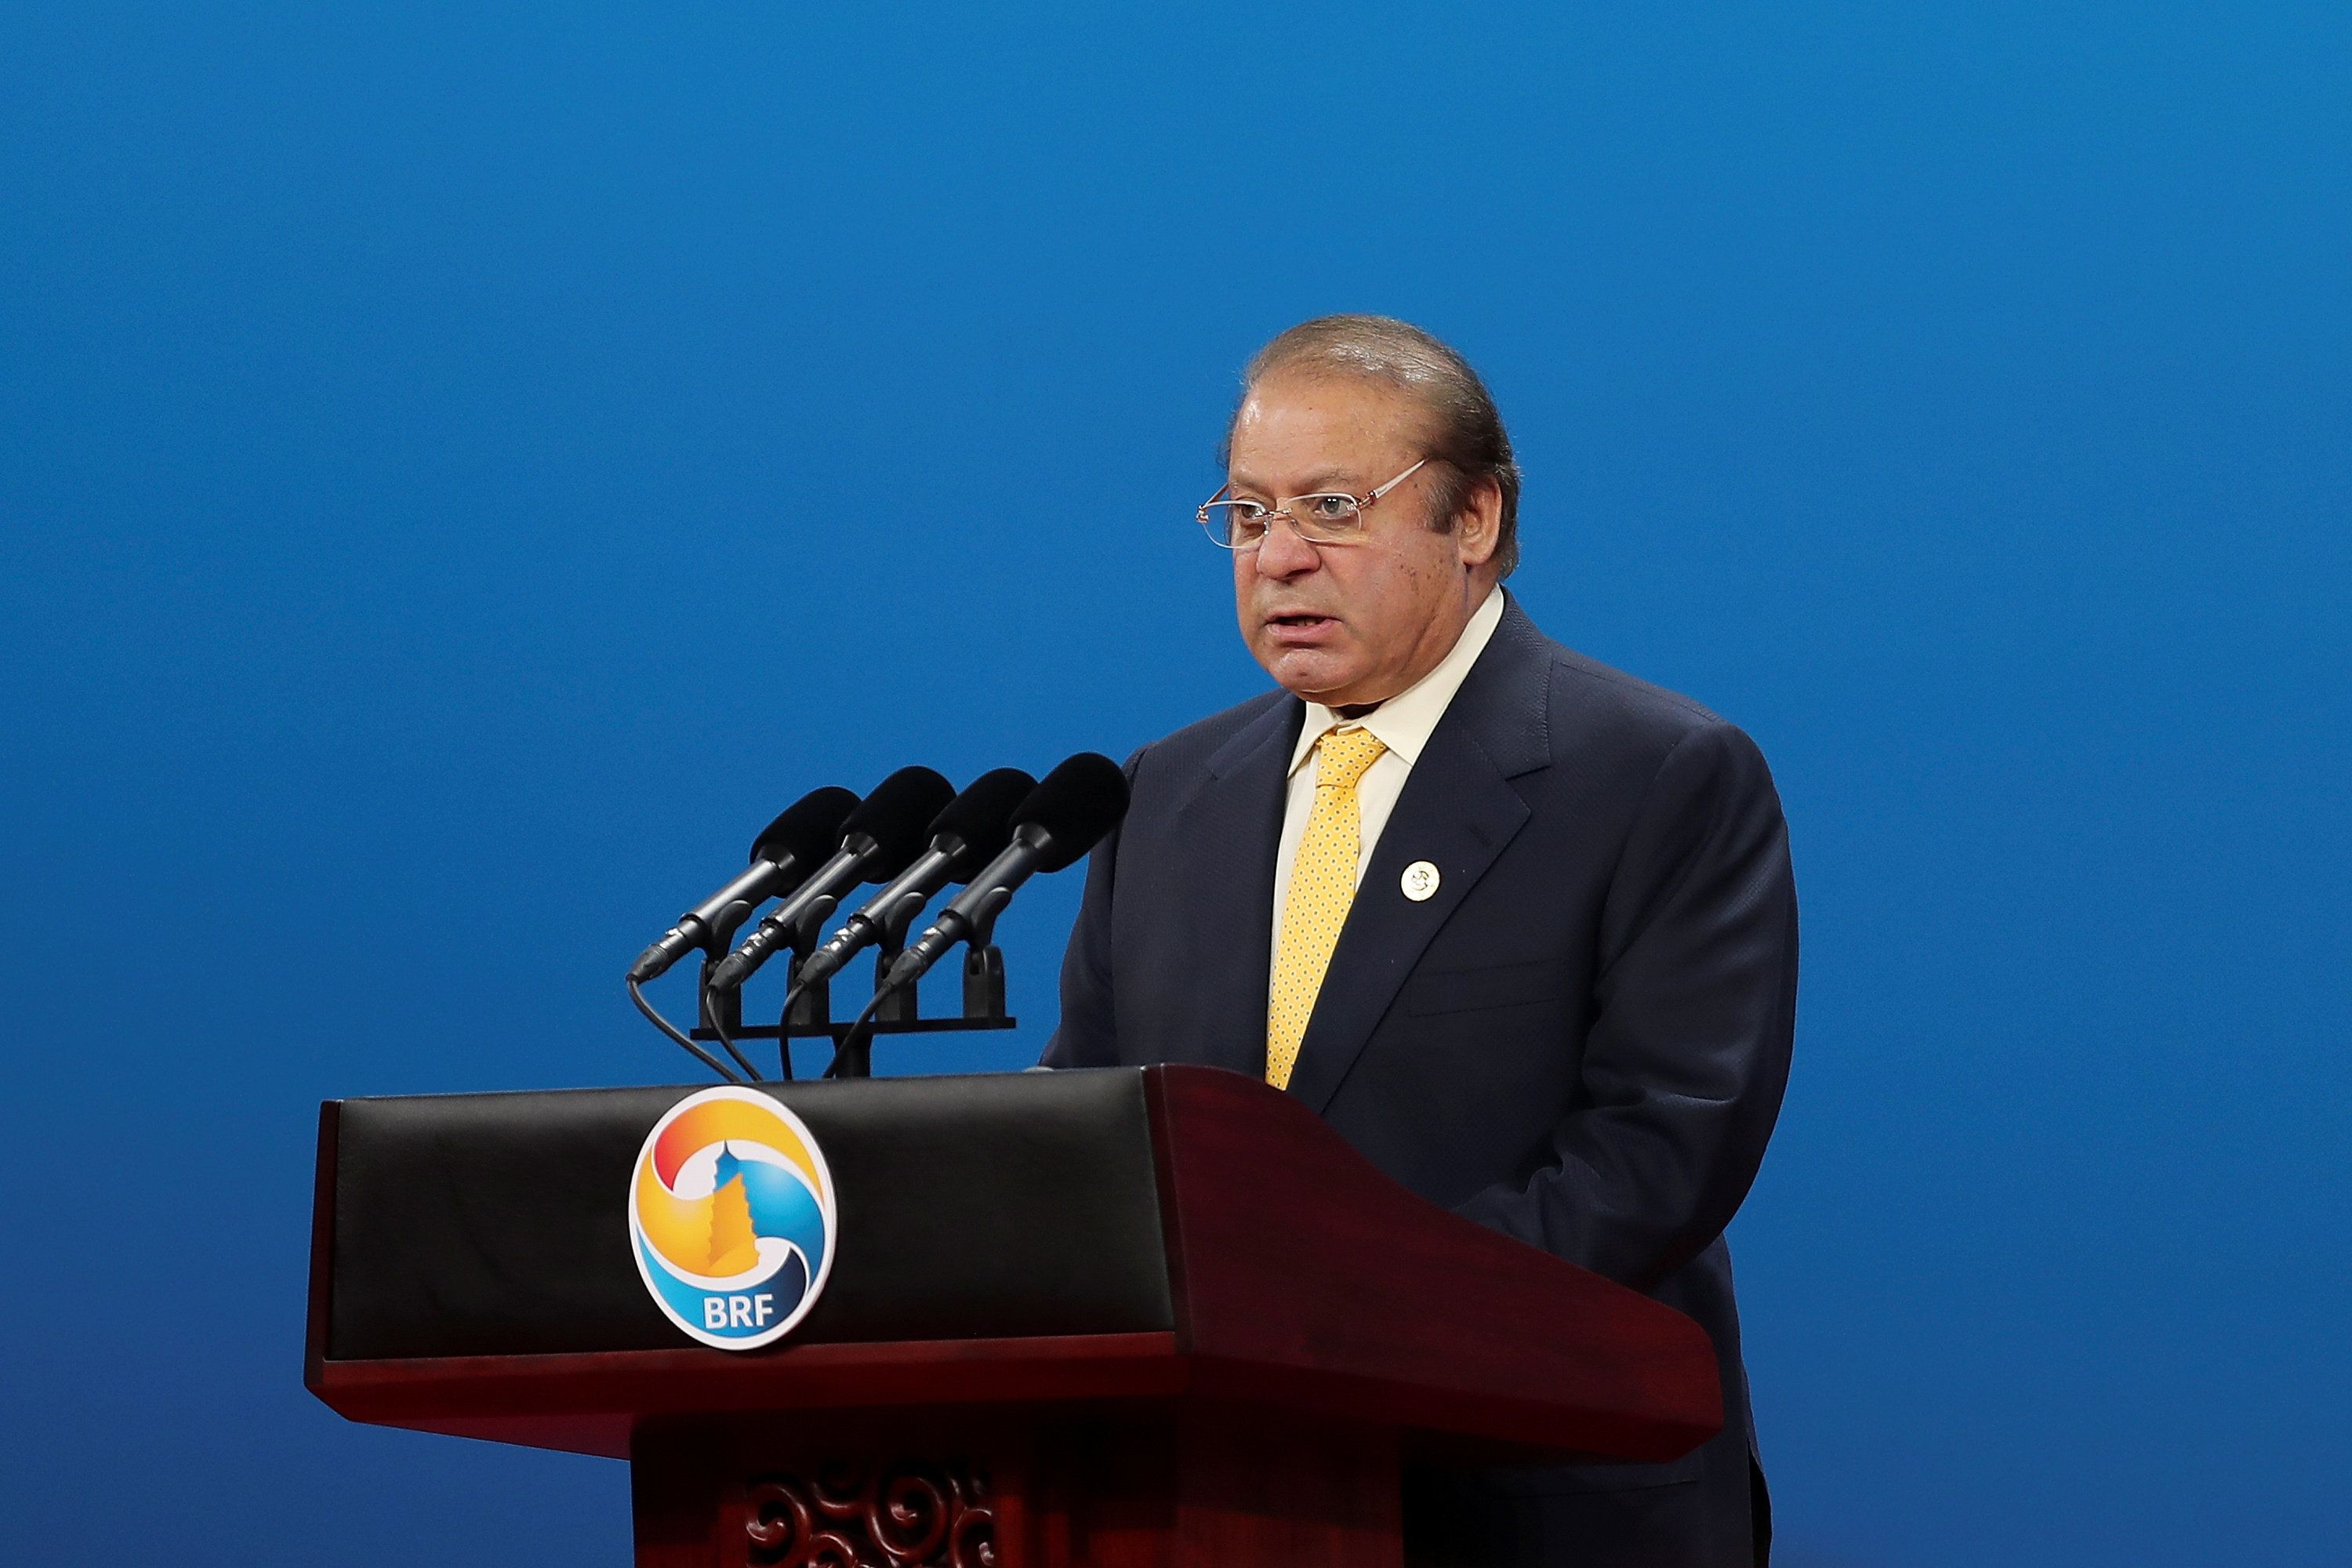 Prime Minister of Pakistan Nawaz Sharif speaks during the Belt and Road Forum for International Cooperation in Beijing, China May 14, 2017. REUTERS/Lintao Zhang/Pool *** Local Caption *** awaz Sharif